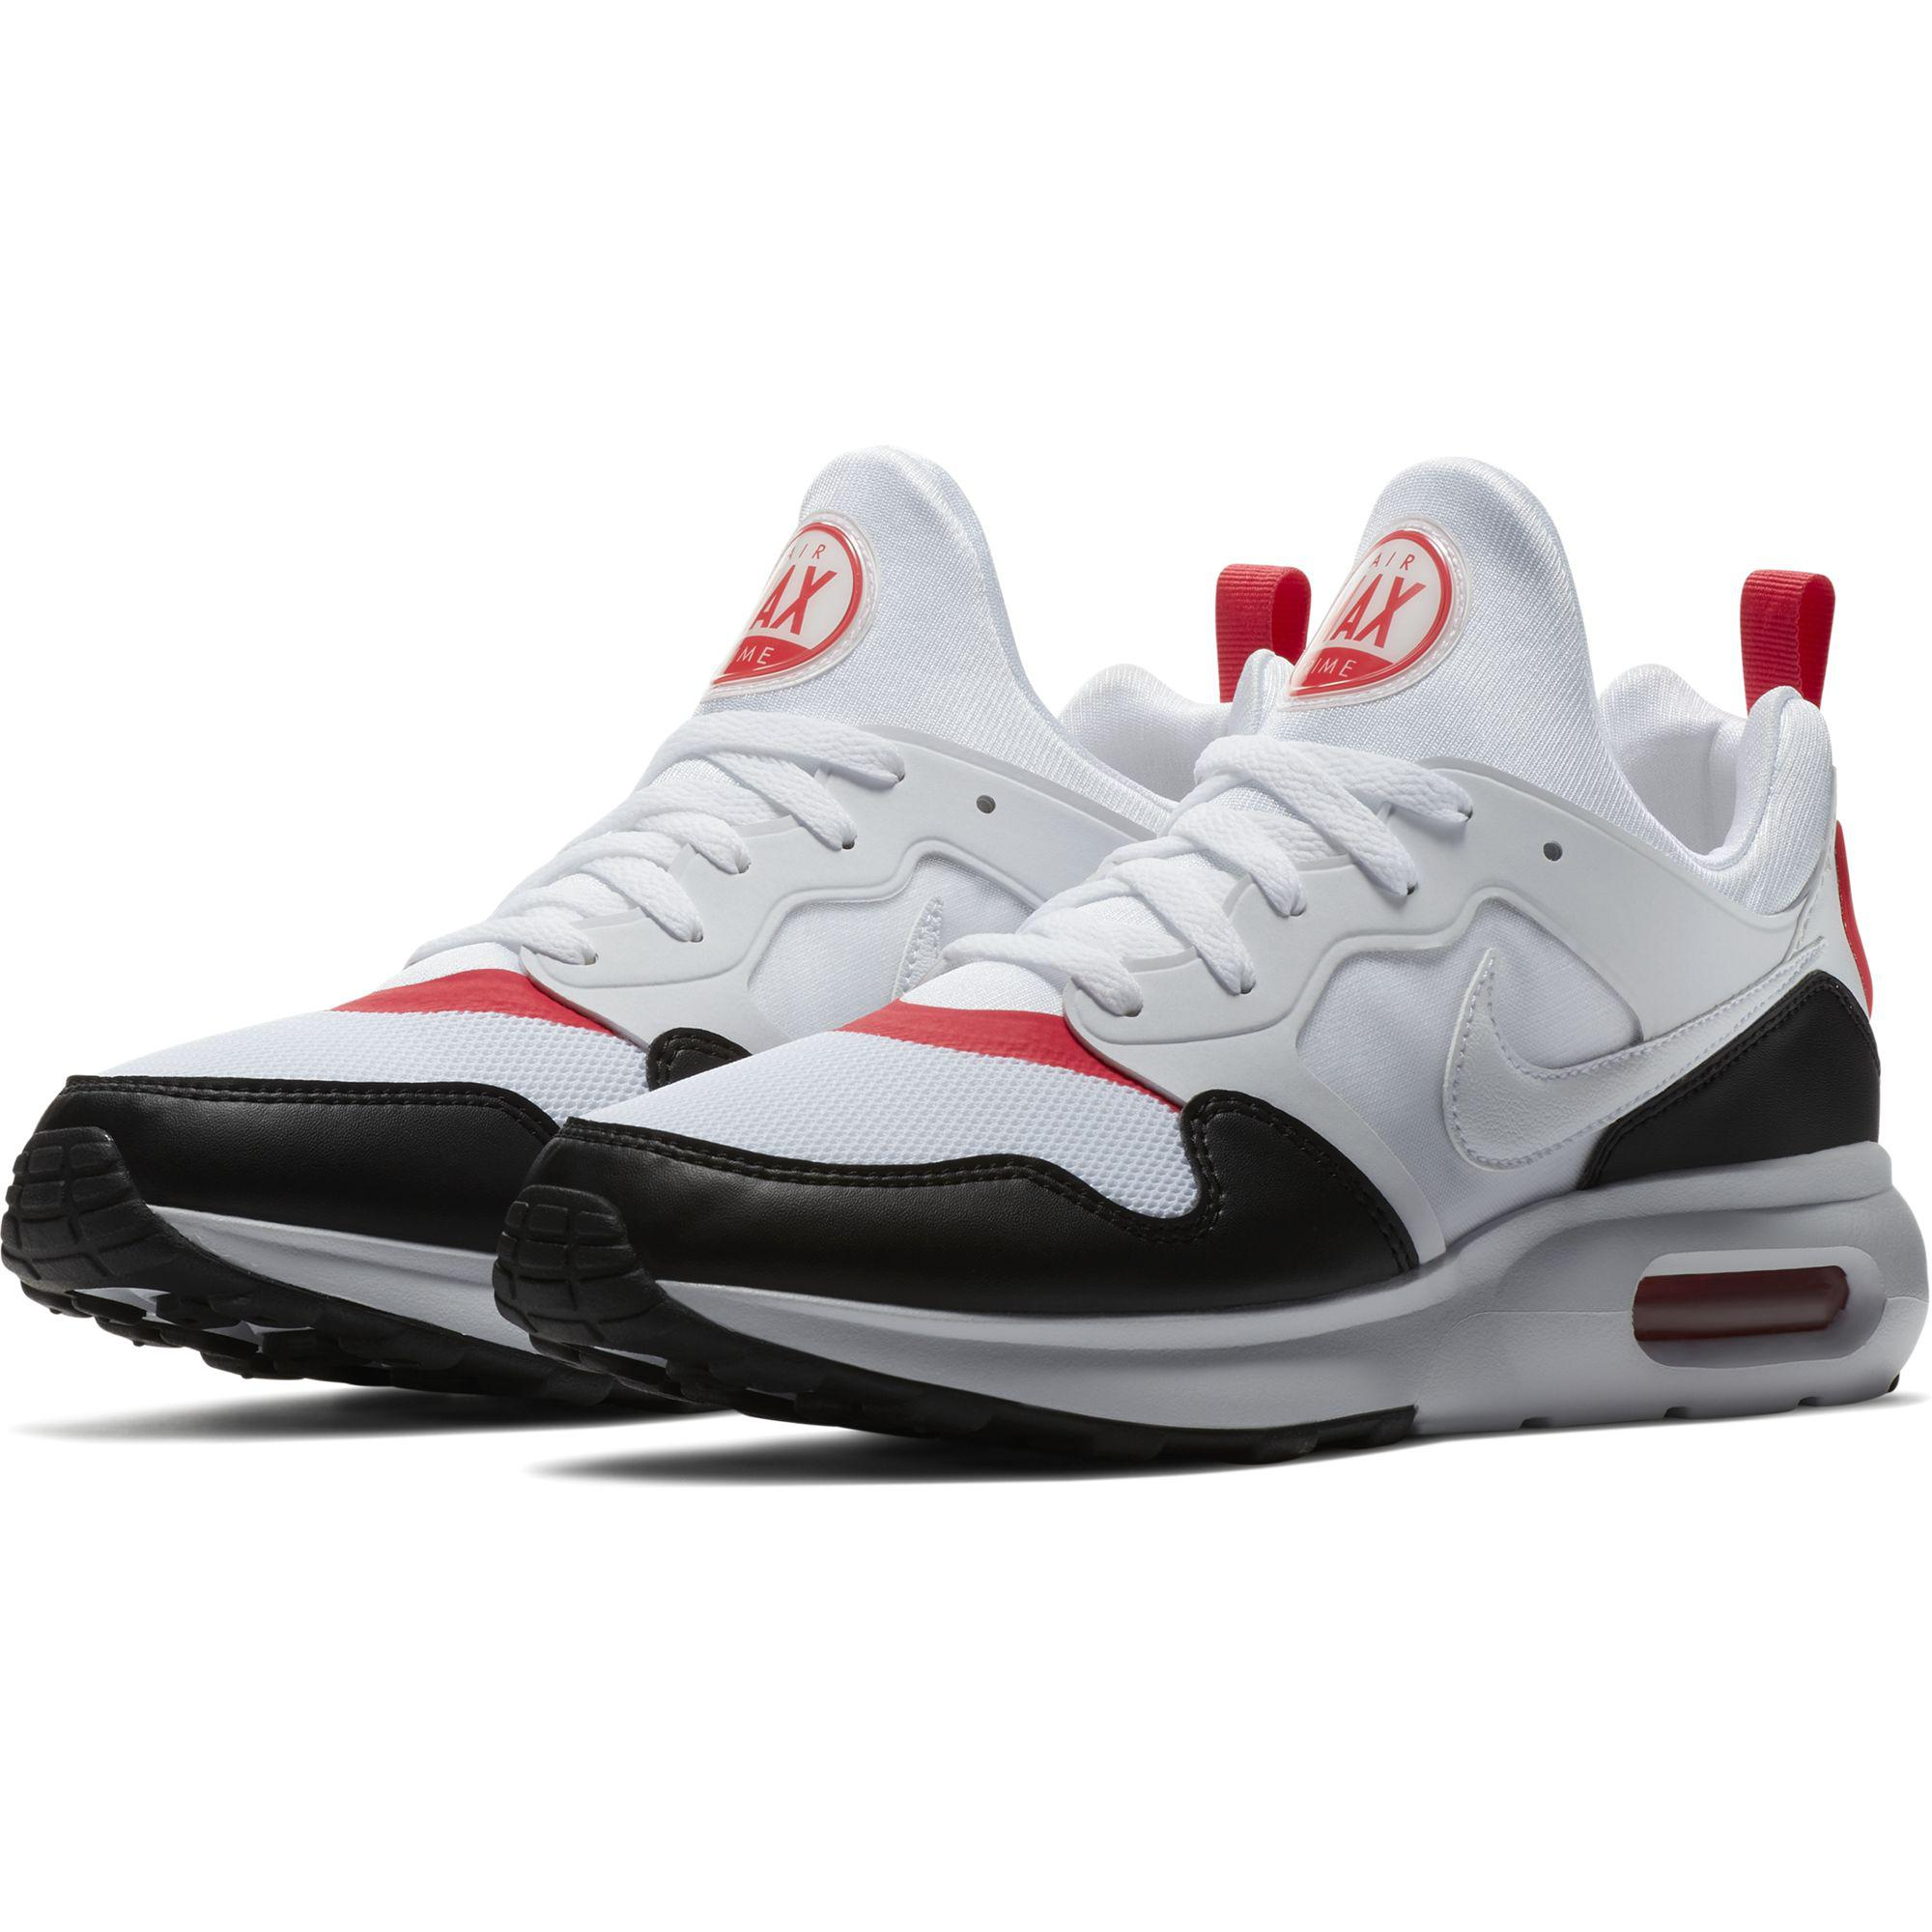 new product 2ebe6 f95d5 Nike Mens Air Max Prime Shoes - White Siren Red Black